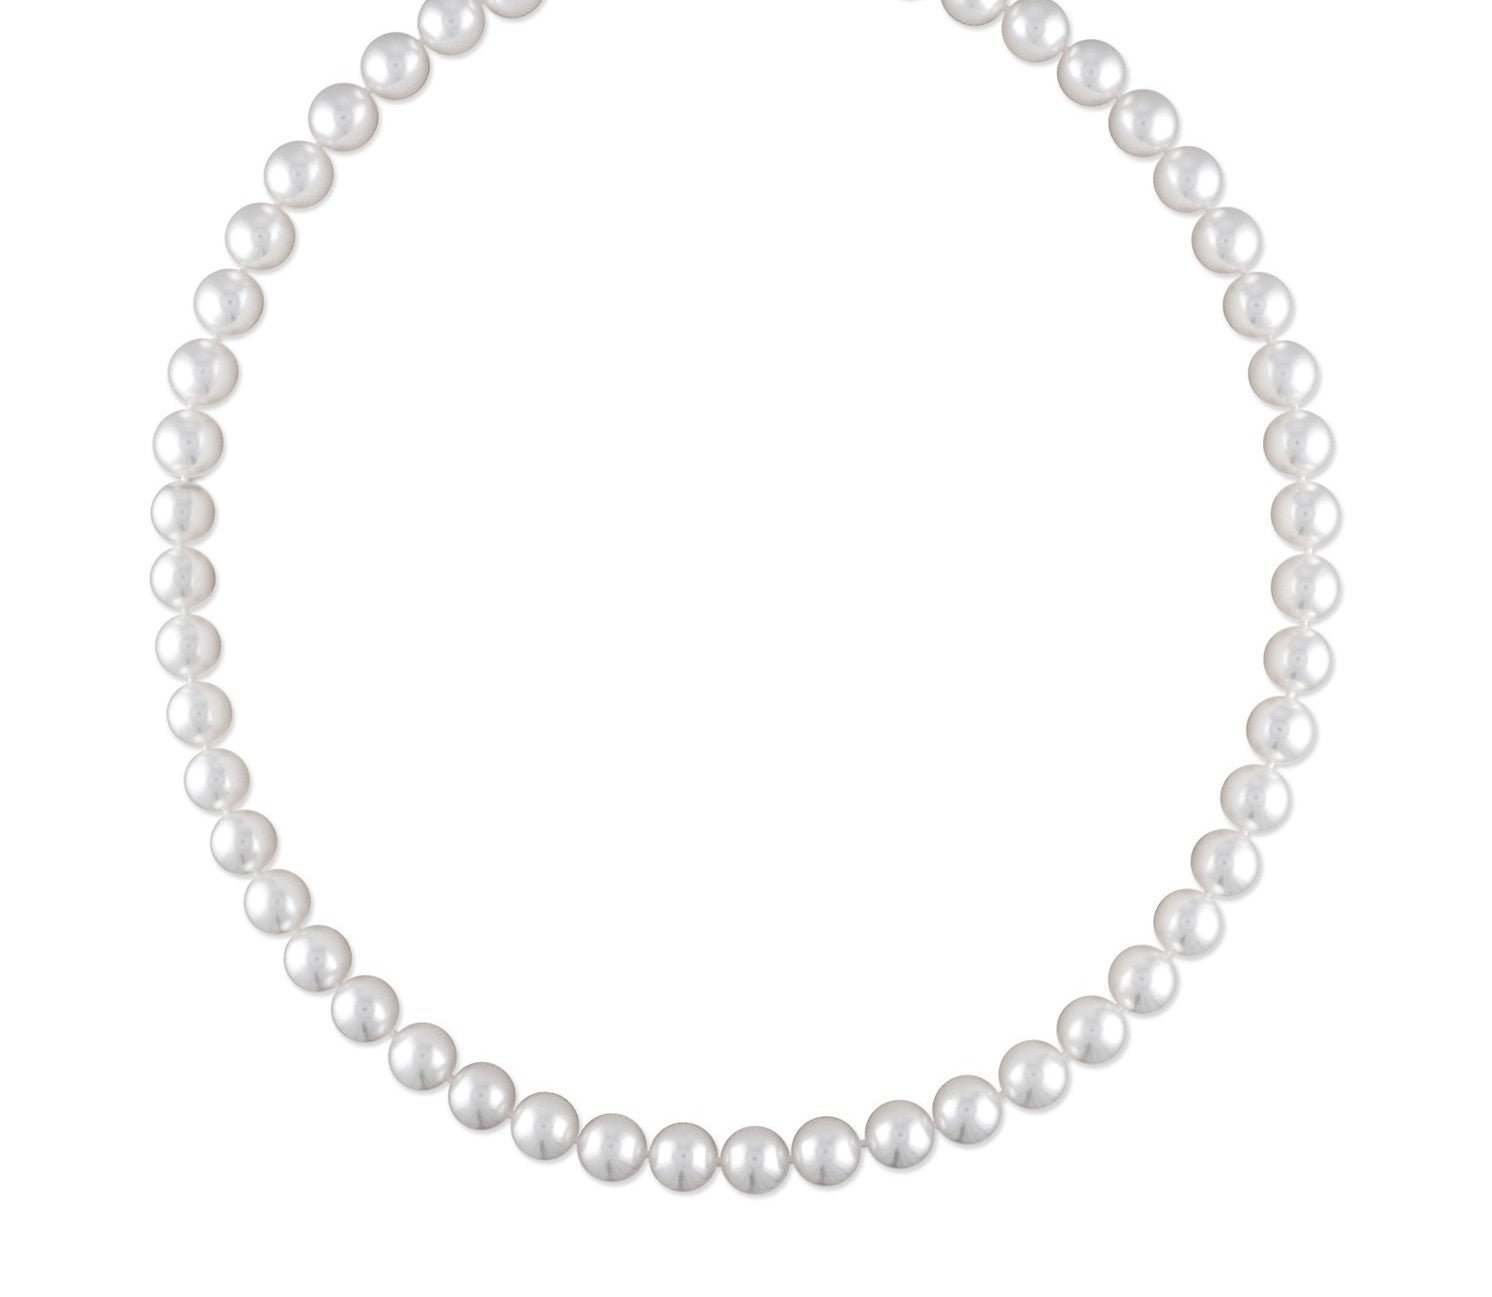 7-7.5mm Akoya Cultured Pearl Necklace